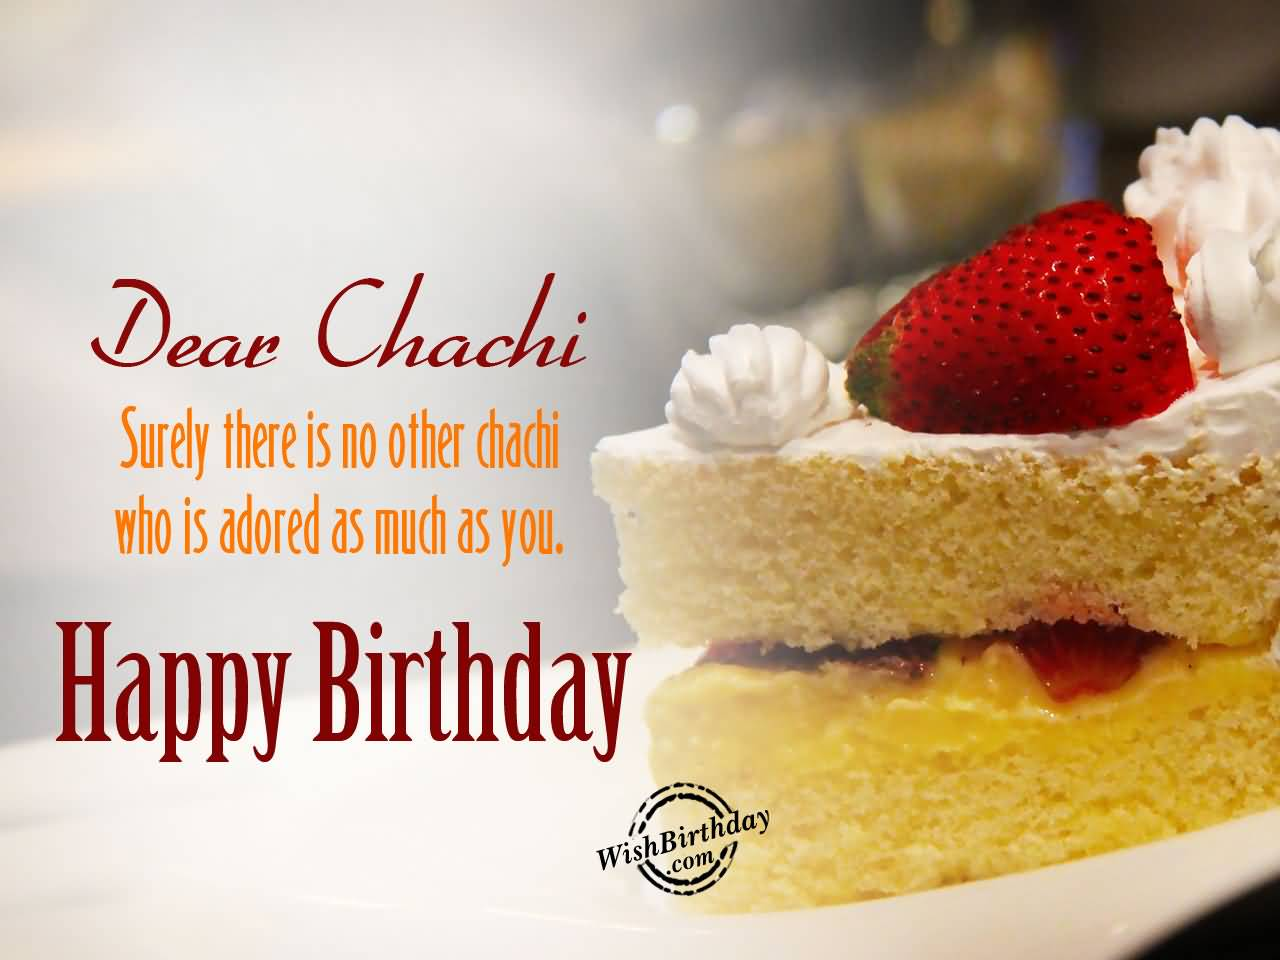 Dear Chachi Ji Surely There Is No Other Chachi Who Is Adored As Much As You Happy Birthday